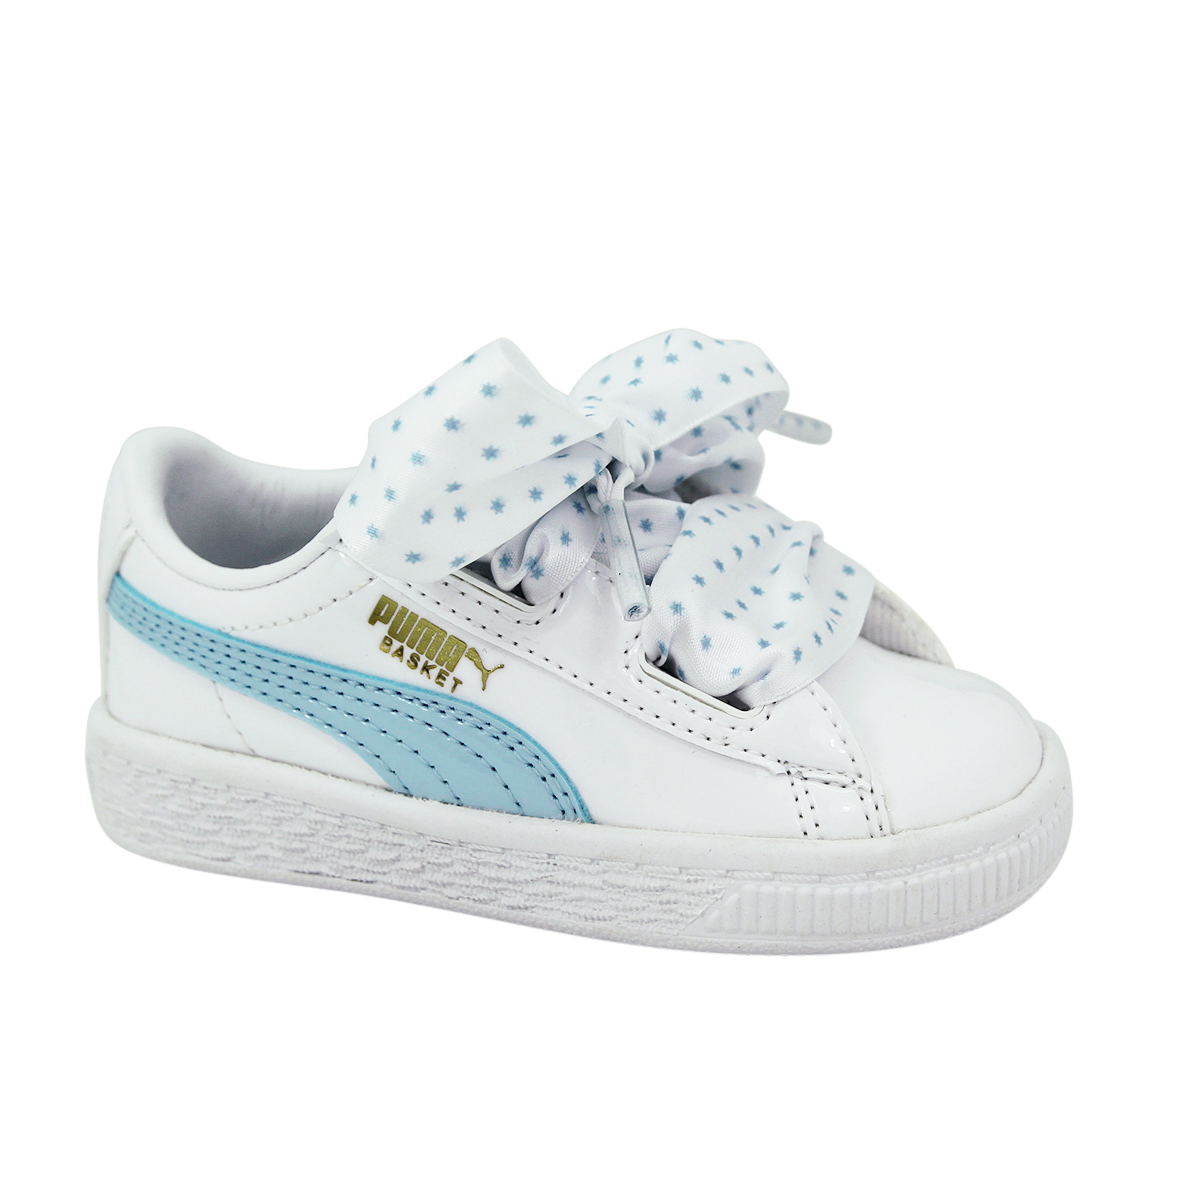 Details about Puma Basket Heart Stars Inf Children Girl Sneakers Shoes New show original title